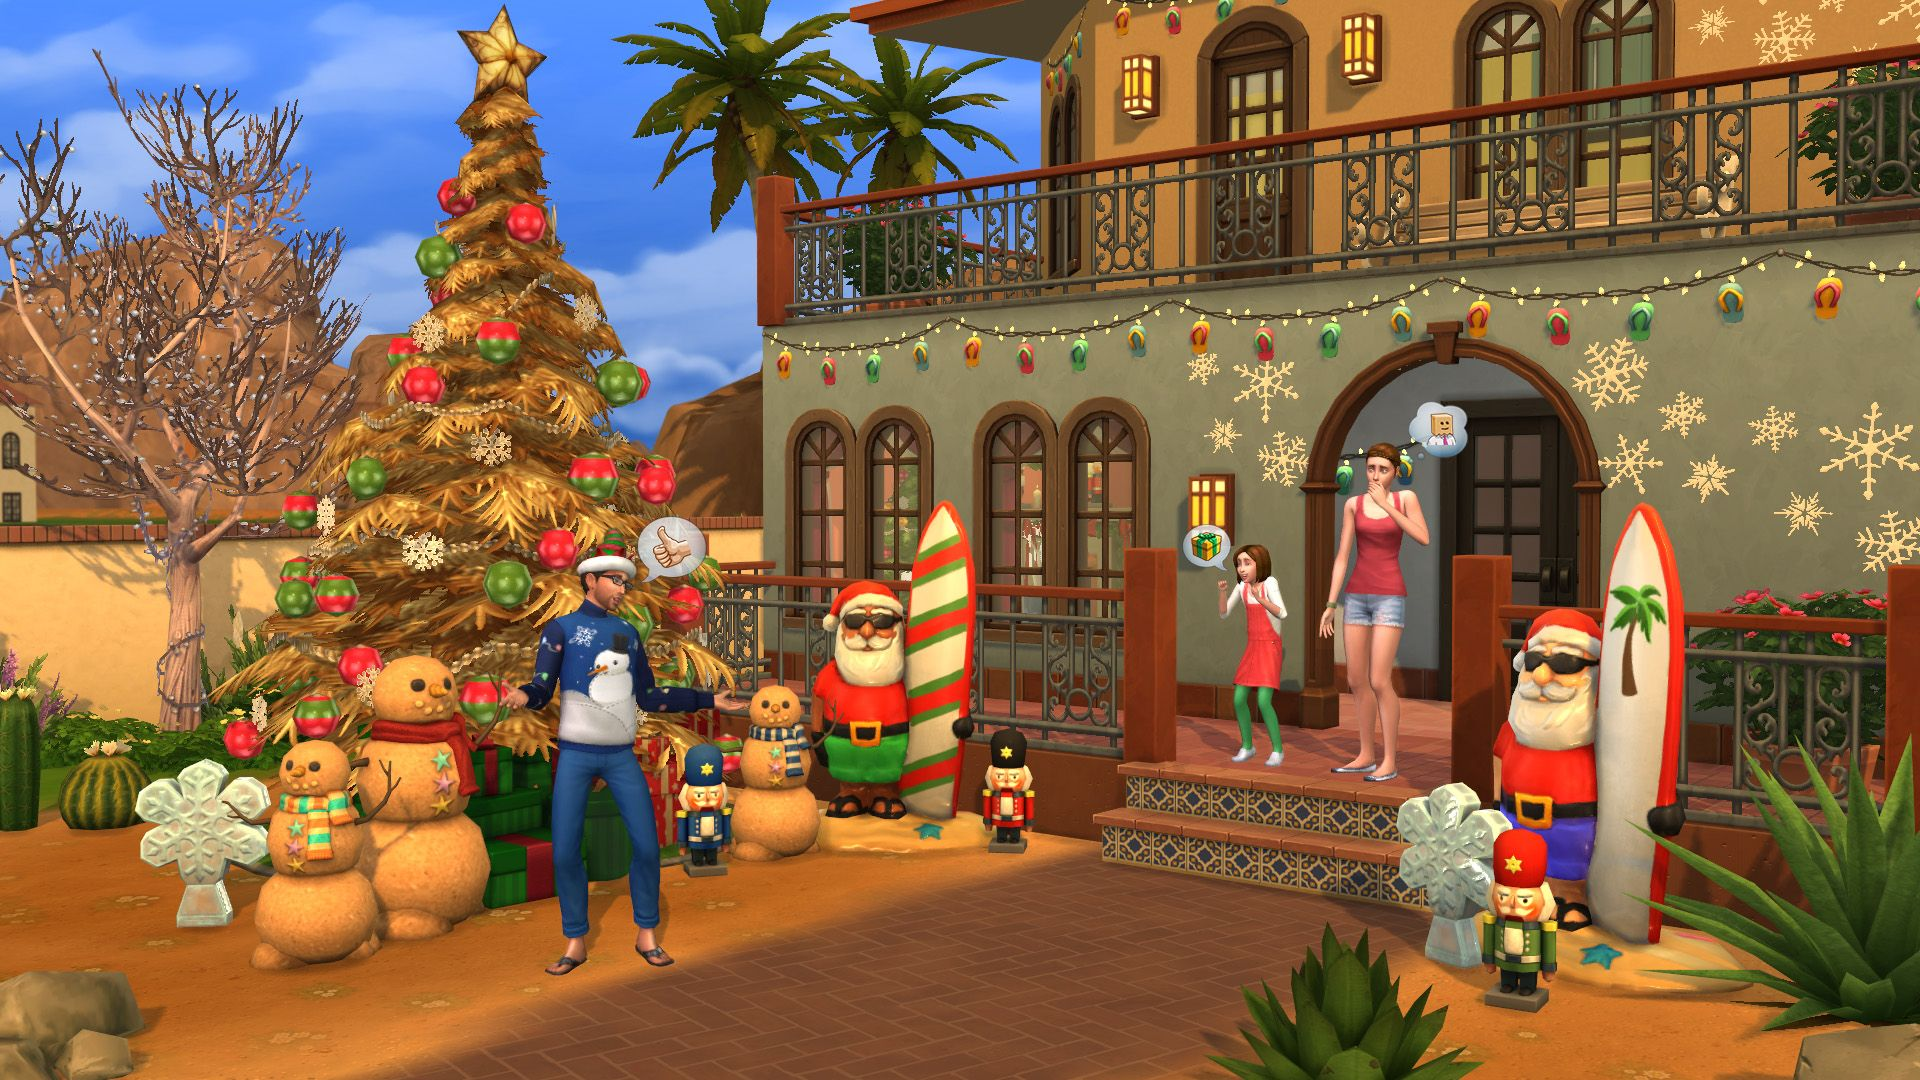 TS4_HOLIDAY_CELEBRATION_01_001.jpg